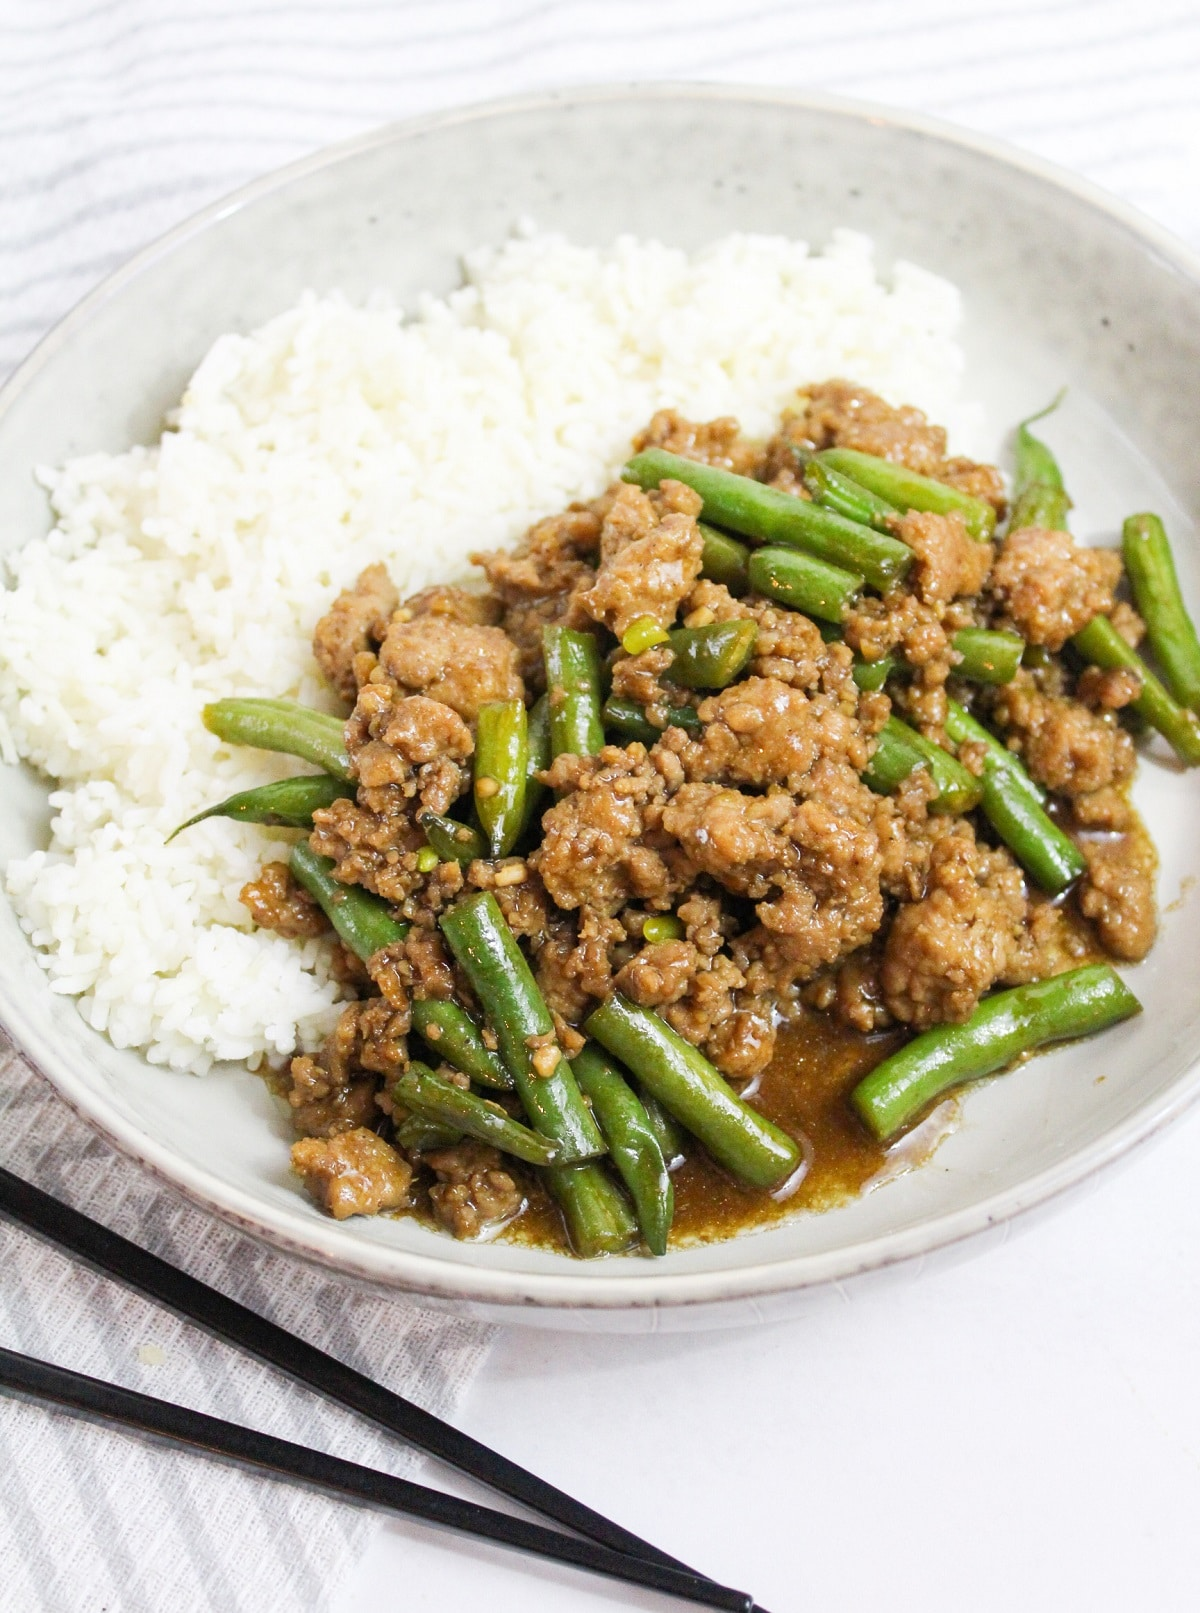 Szechuan Green Beans and Ground Pork in a white bowl with rice